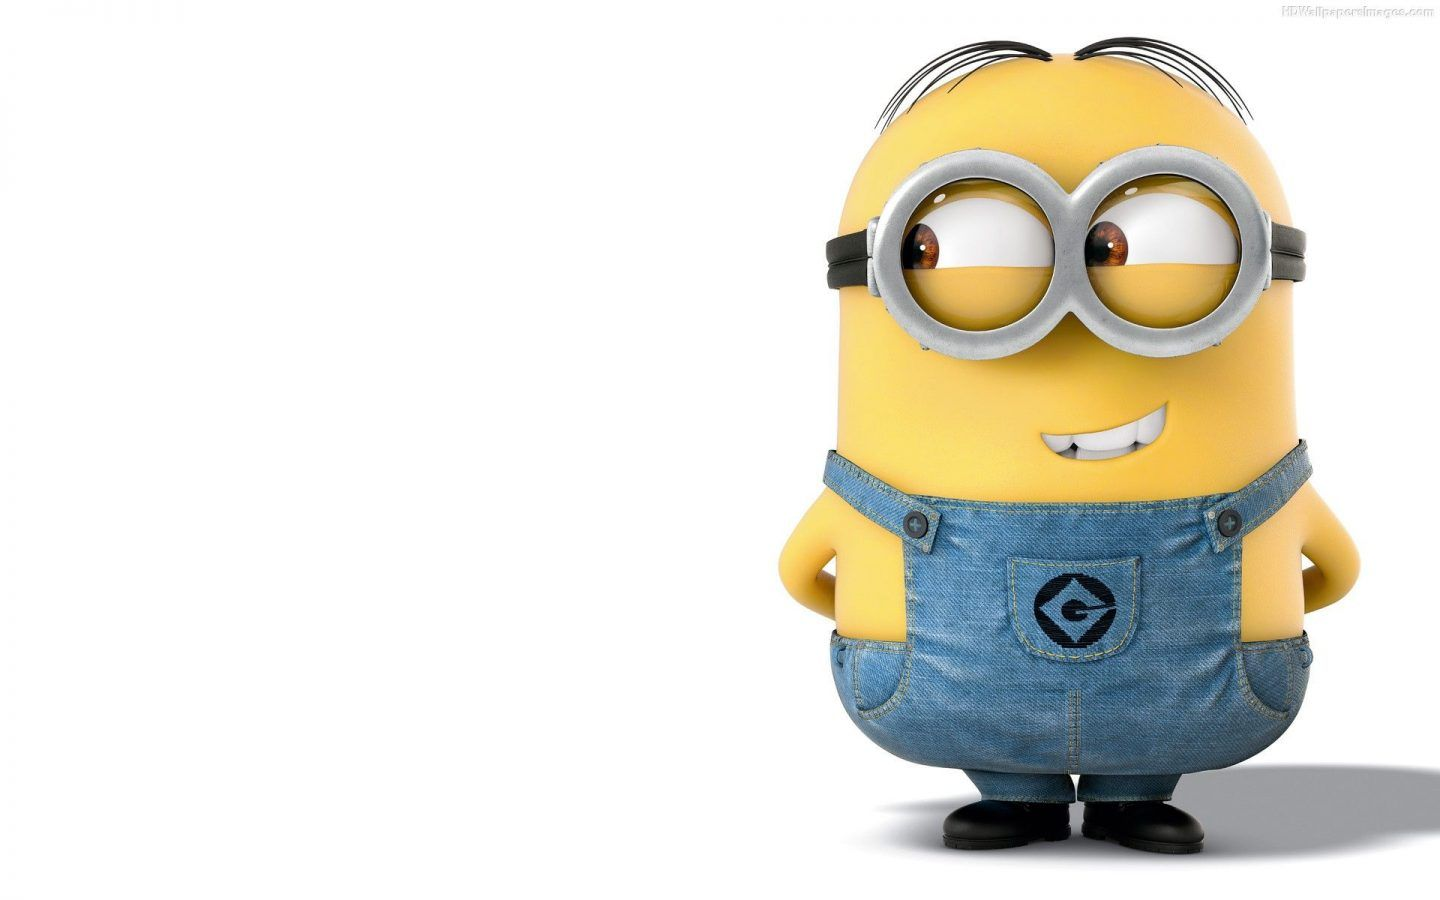 Minion Background Hd Firefox Wallpaper Free Download Wallpapers Desktop Dengan Gambar